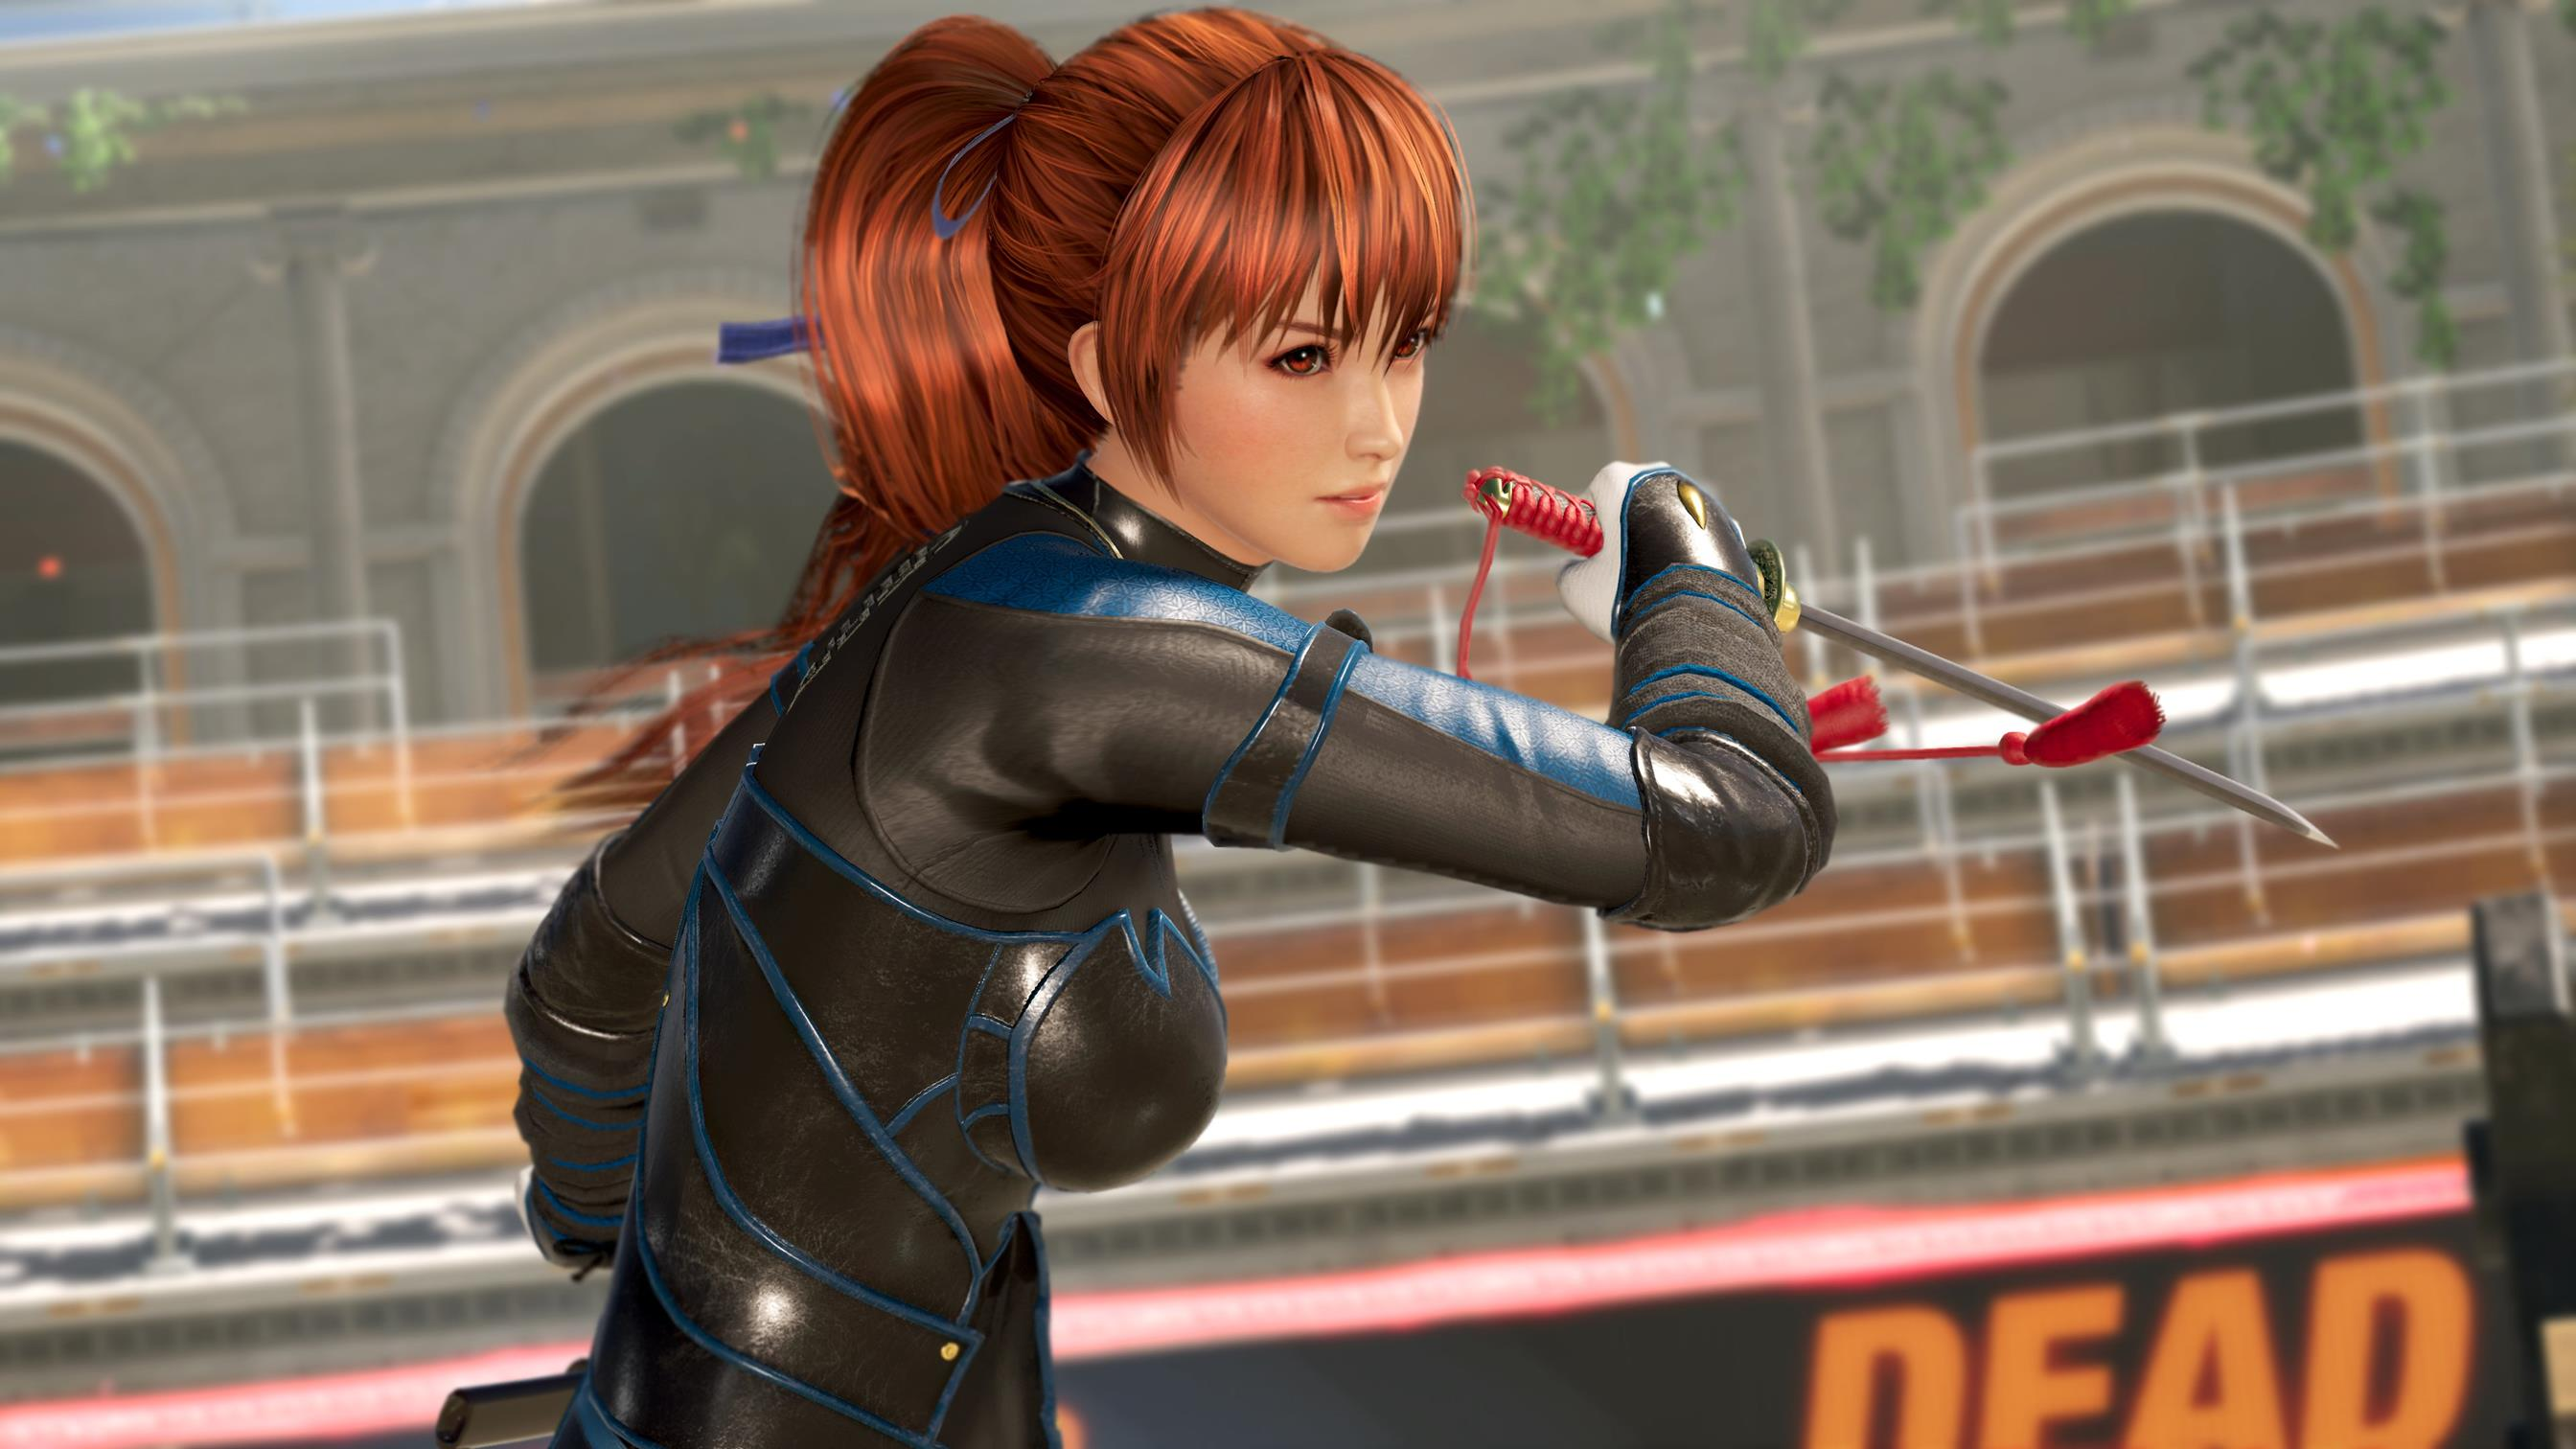 Dead or Alive 6 official reveal trailer published, coming out in 2019